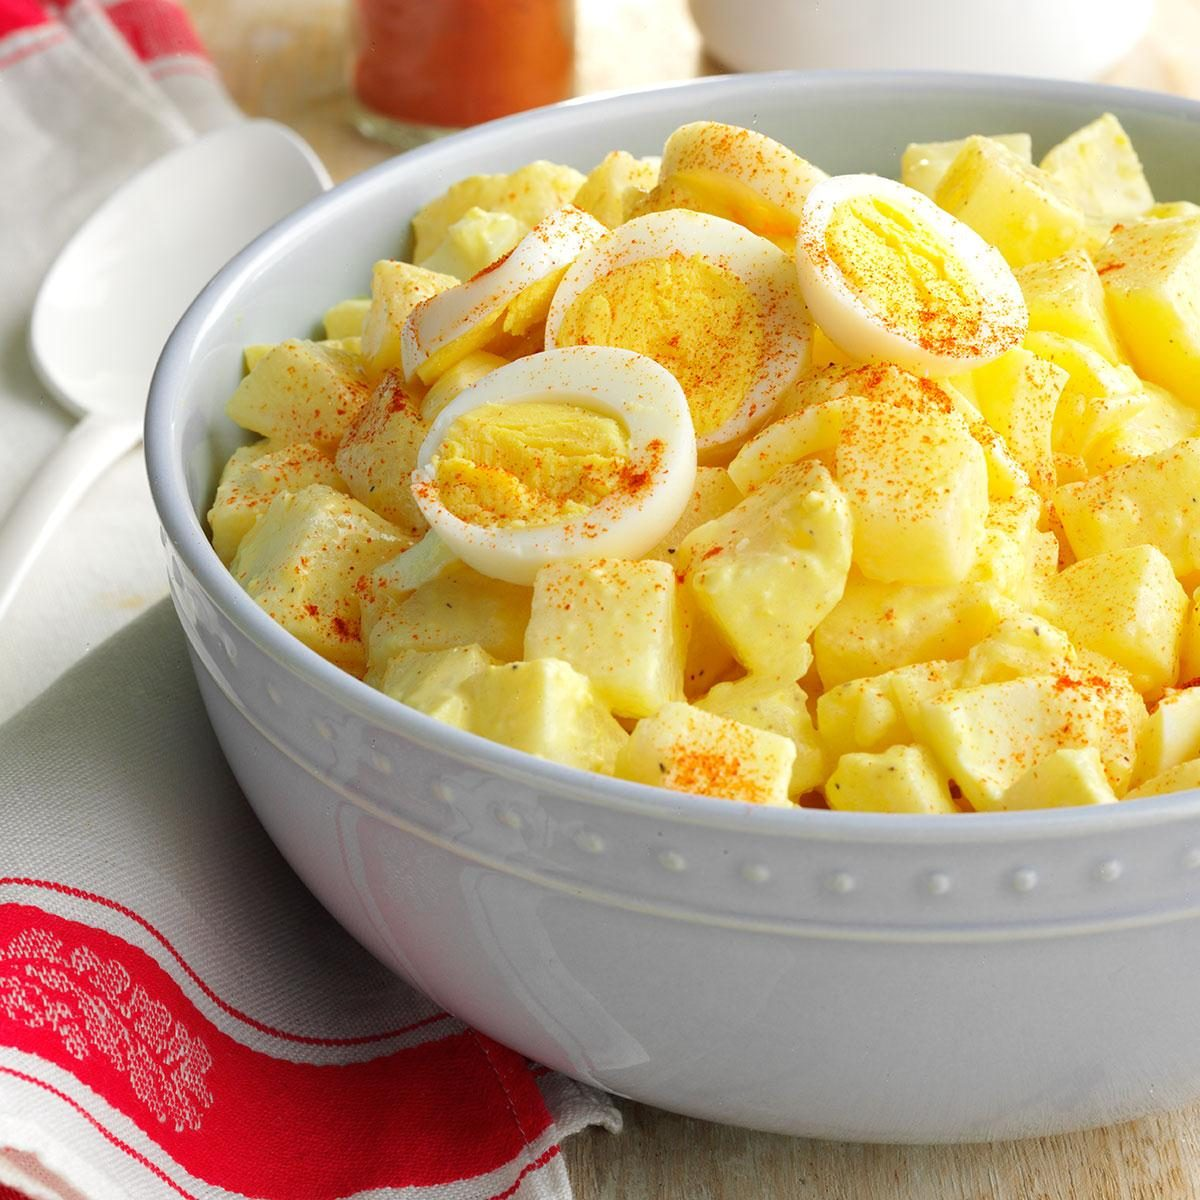 How To Make Simple Potato Salad With Eggs